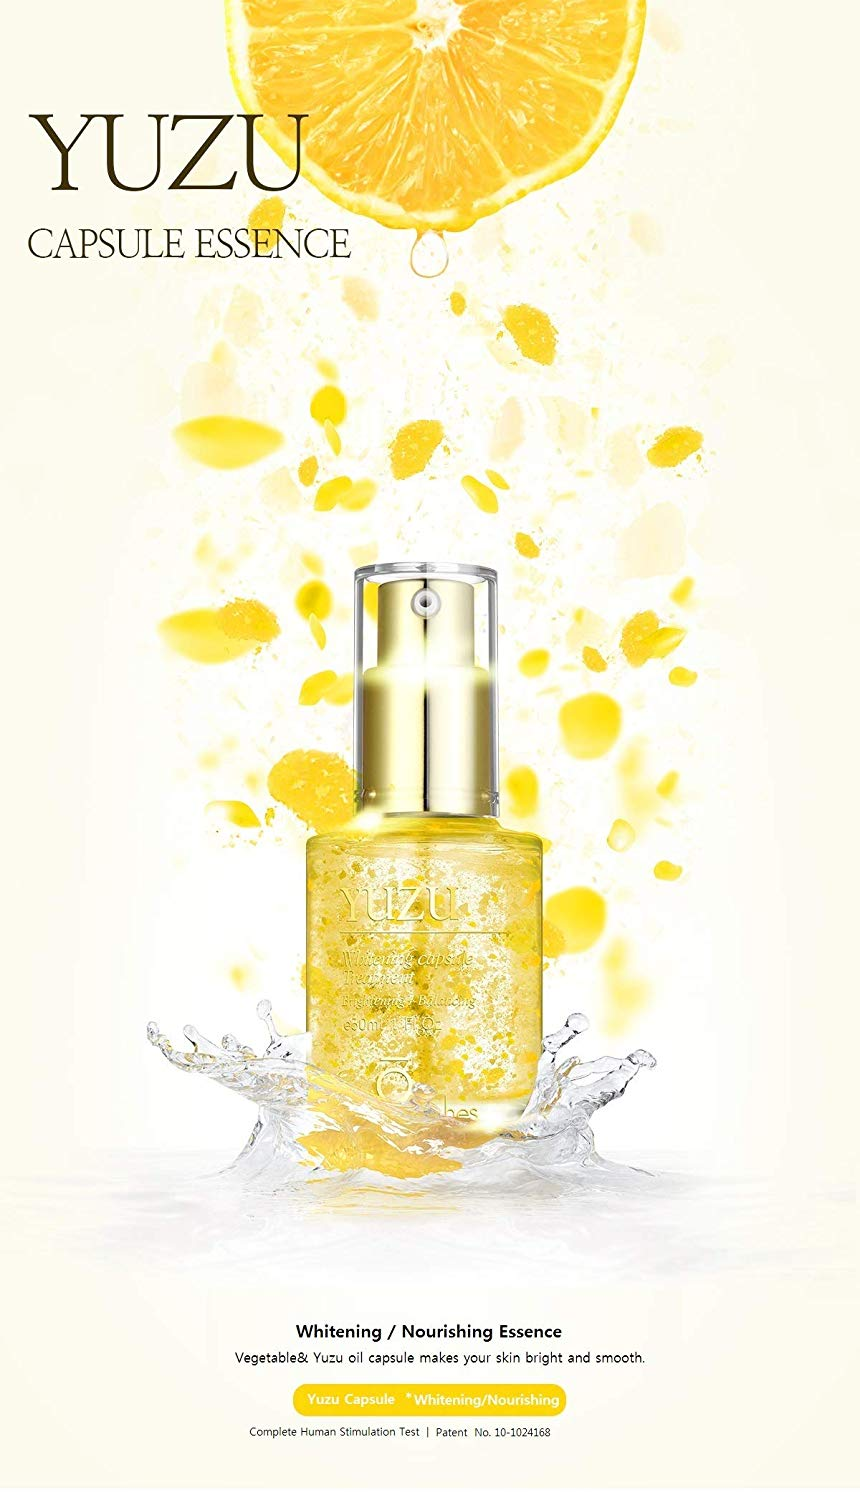 9WISHES YUZU ESSENCE CAPSULE COSME HUT AUSTRALIA